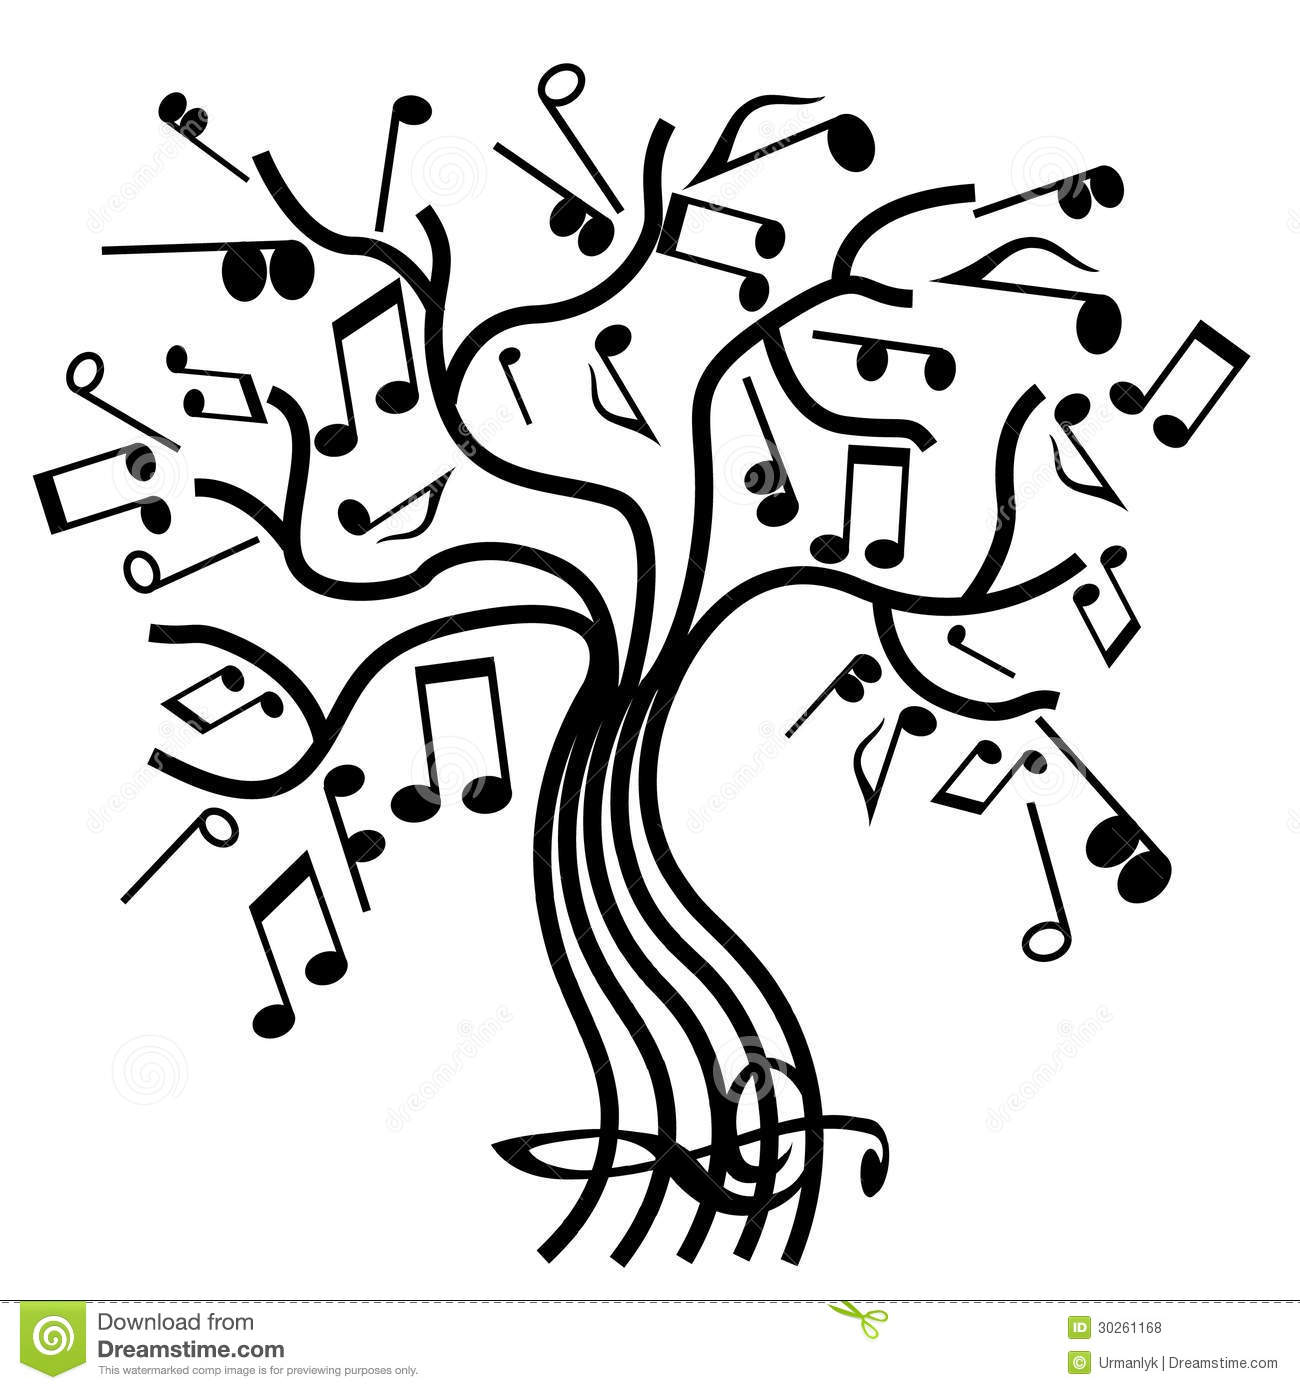 Musical Tree Vector Royalty Free Stock Photos - Image: 30261168